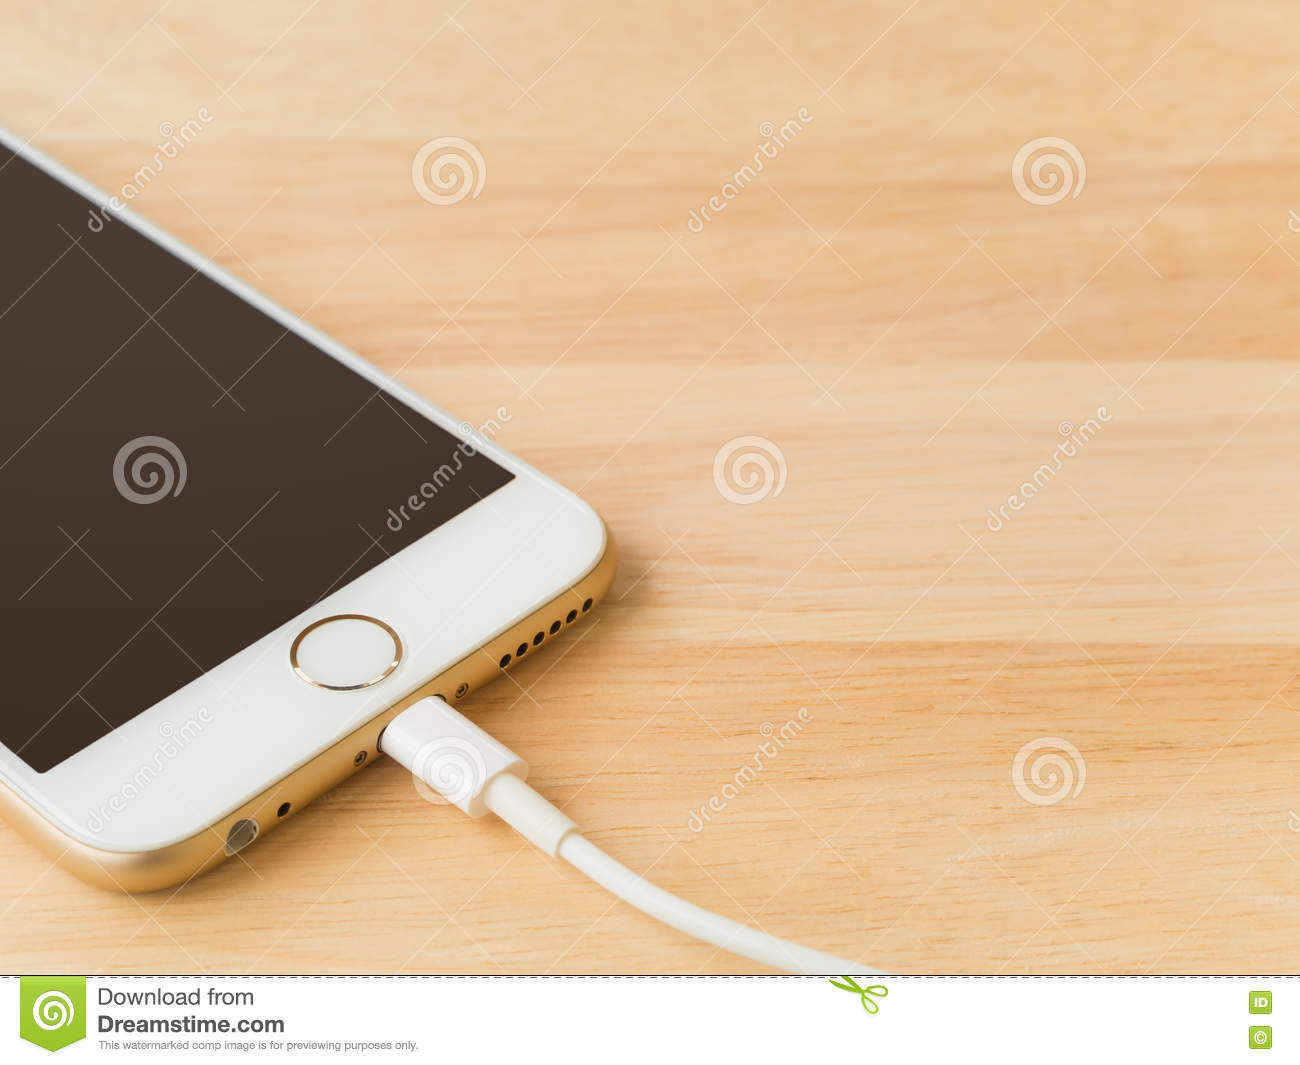 Apple iPhone6 Charging with Lightning USB Cable